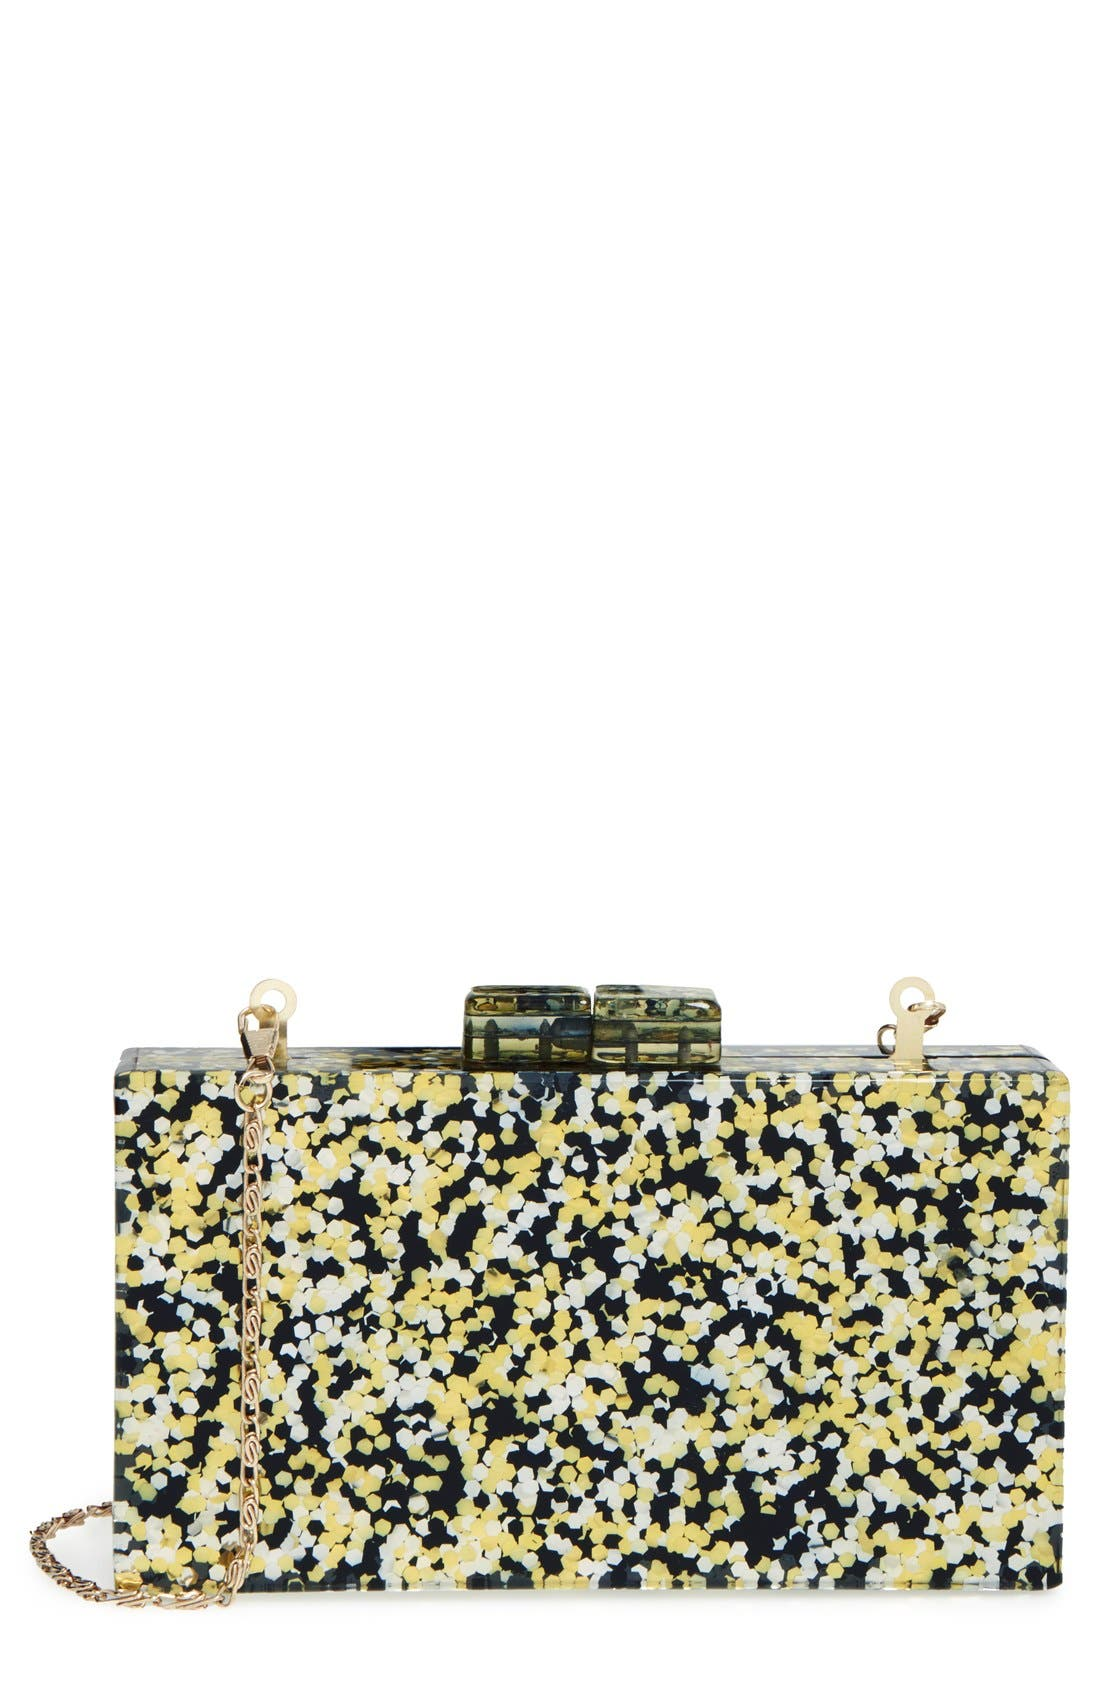 Couture Box Clutch,                             Main thumbnail 1, color,                             Black/ Gold